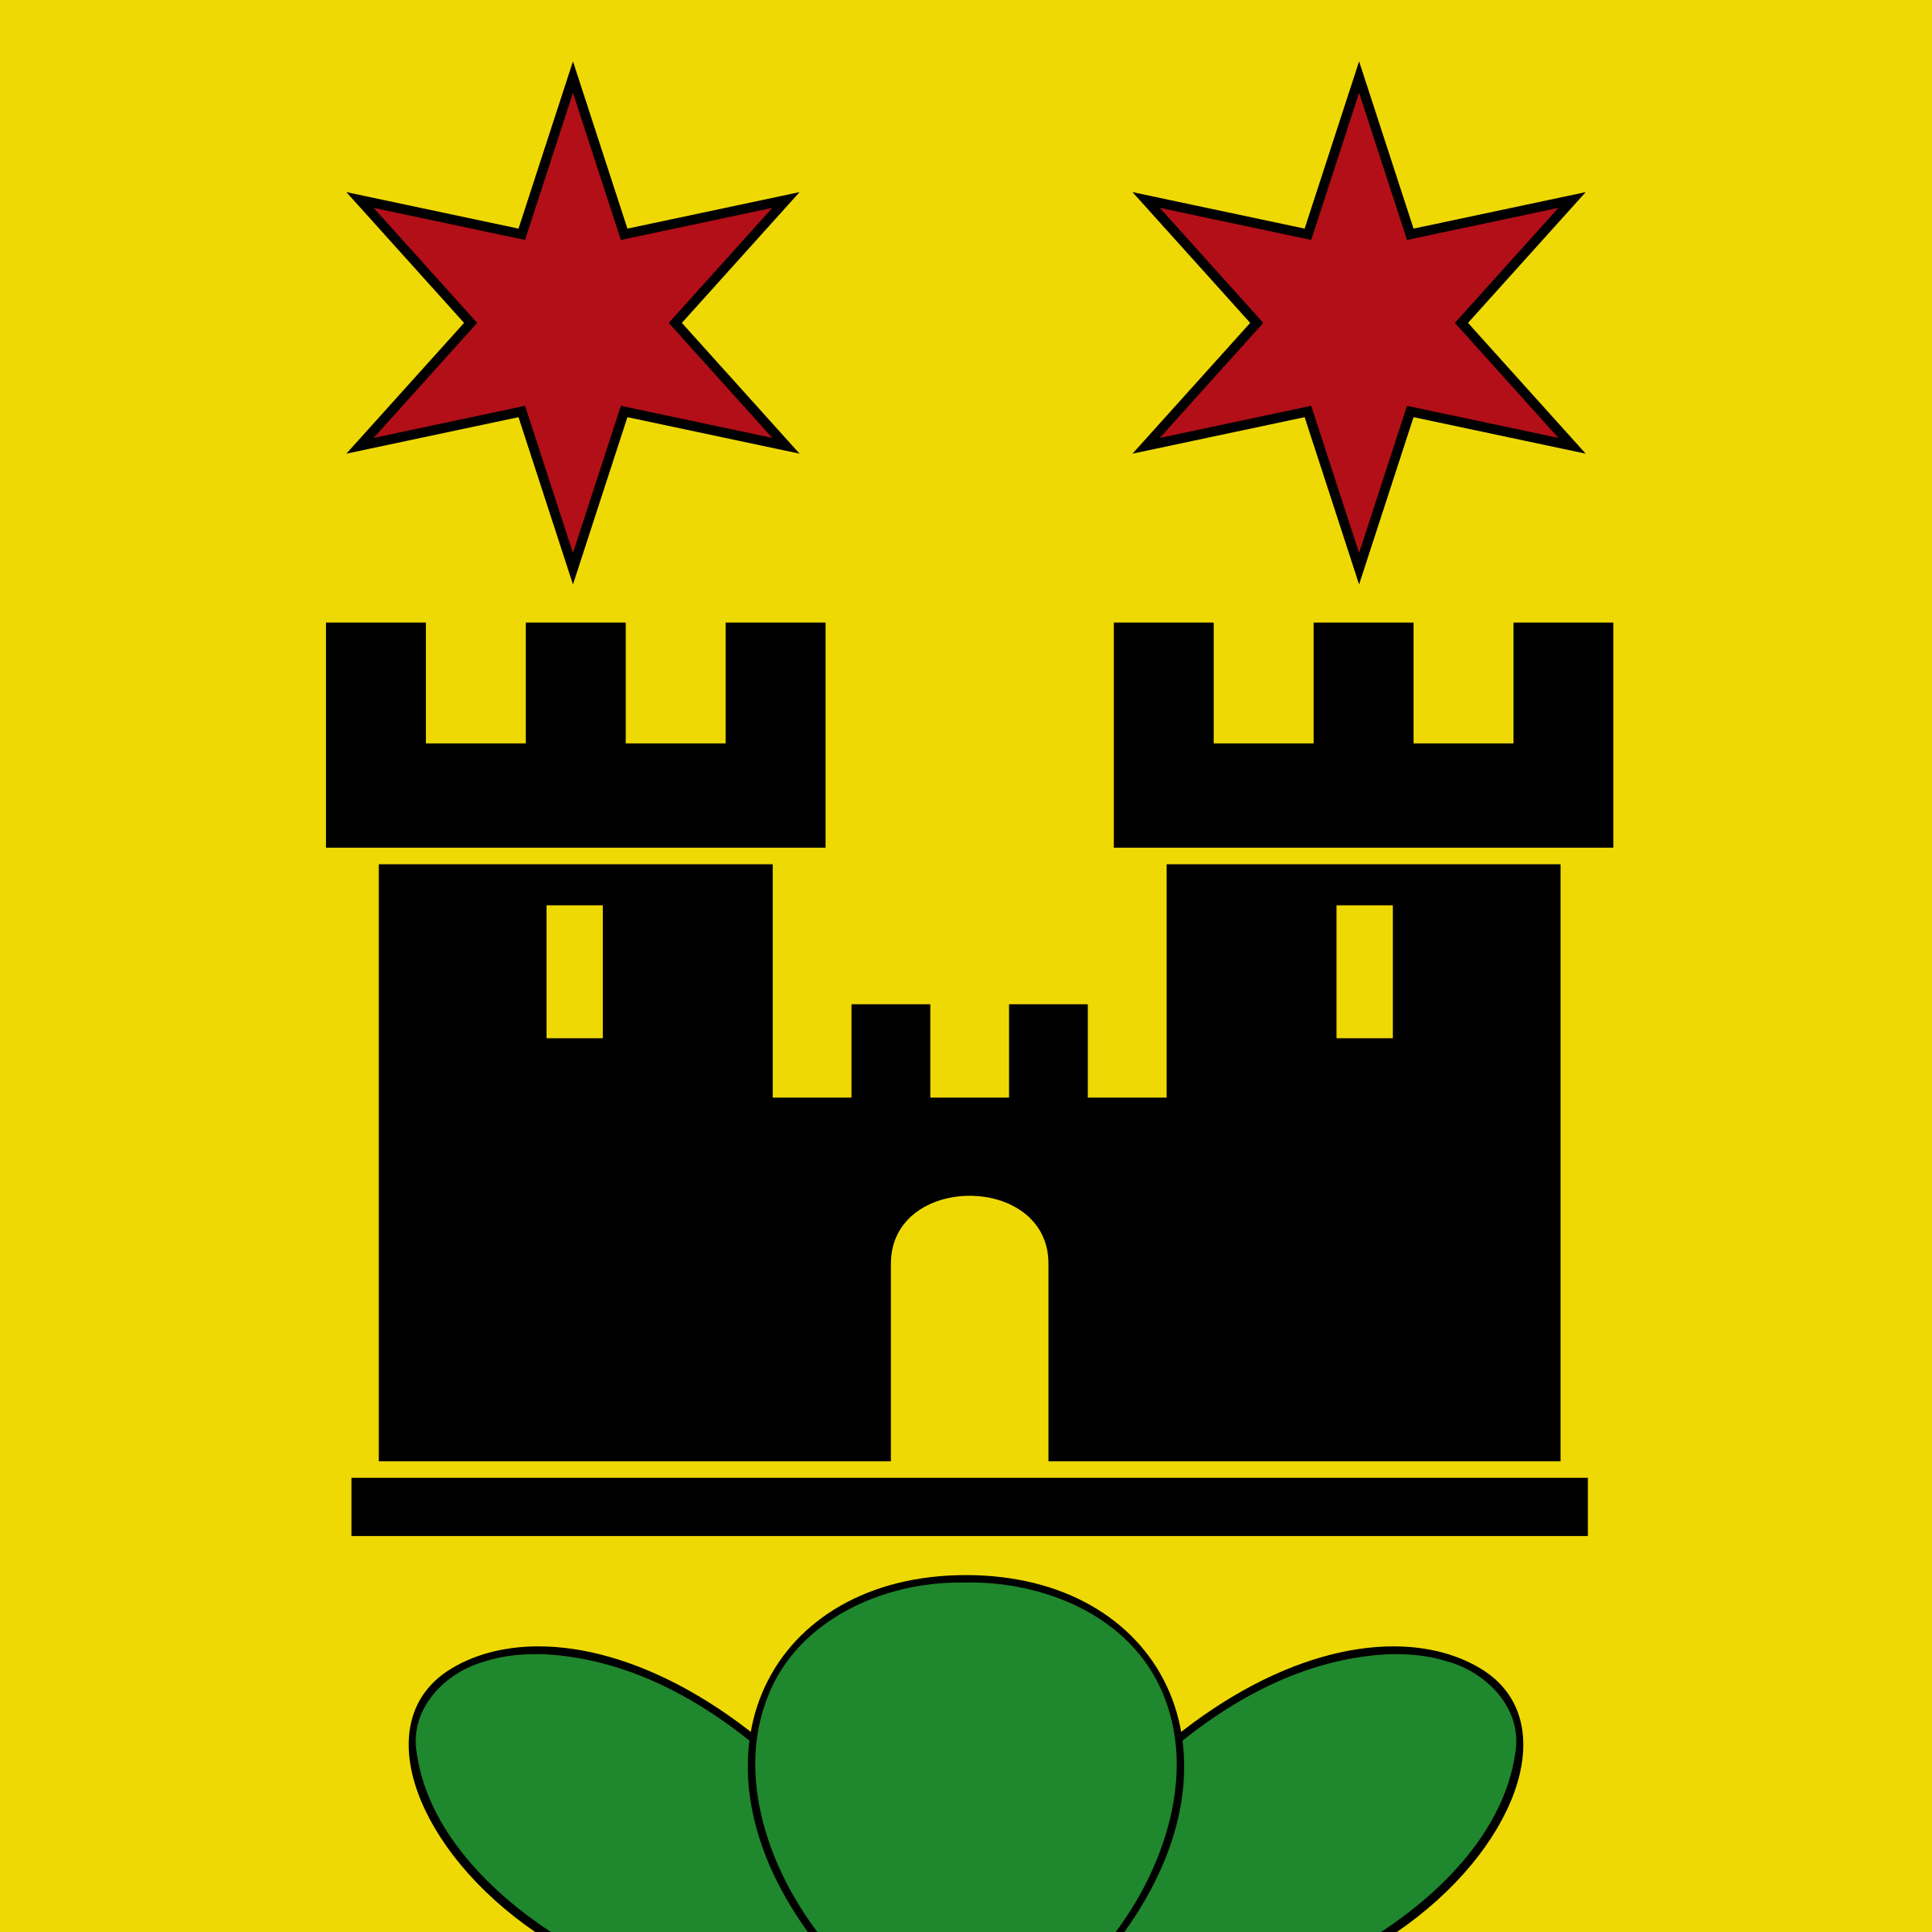 Meilen - Coat of arms by wipp